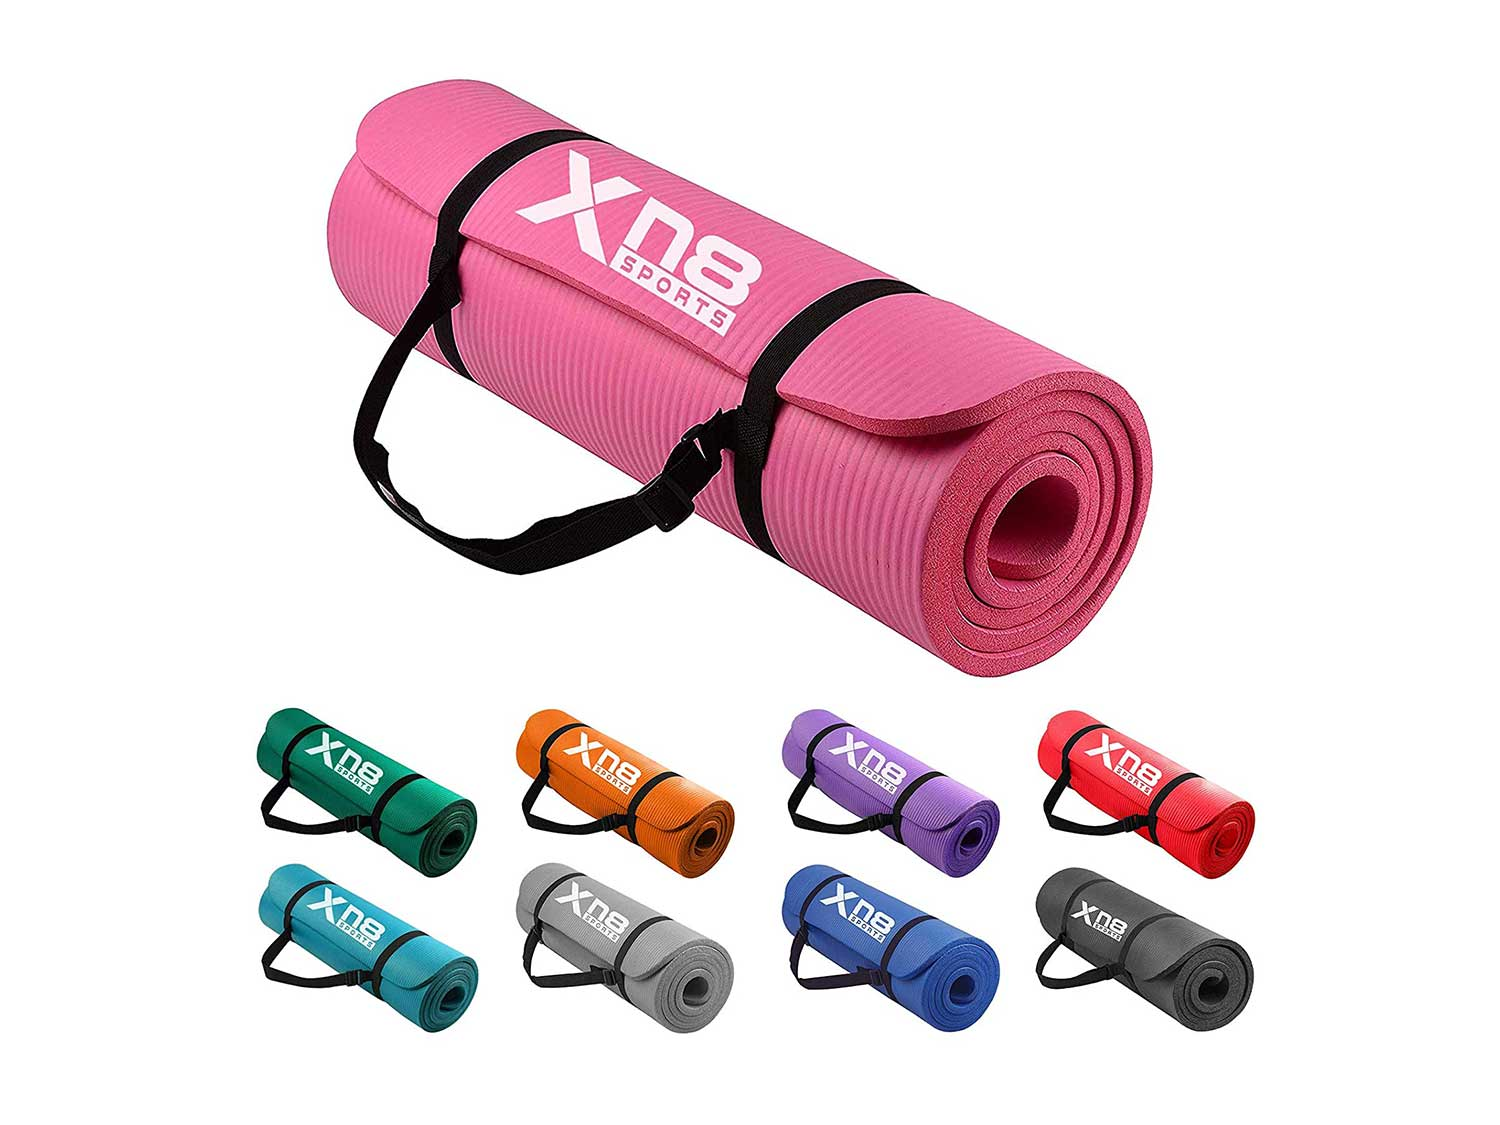 XN8 Padded Exercise Yoga Mat-NBR 15mm Thick with Carry Handle Strap for Pilates-Exercise-Aerobic-Gymnastics-home exercises-fitness-Camping-Gym-Non Slip Large